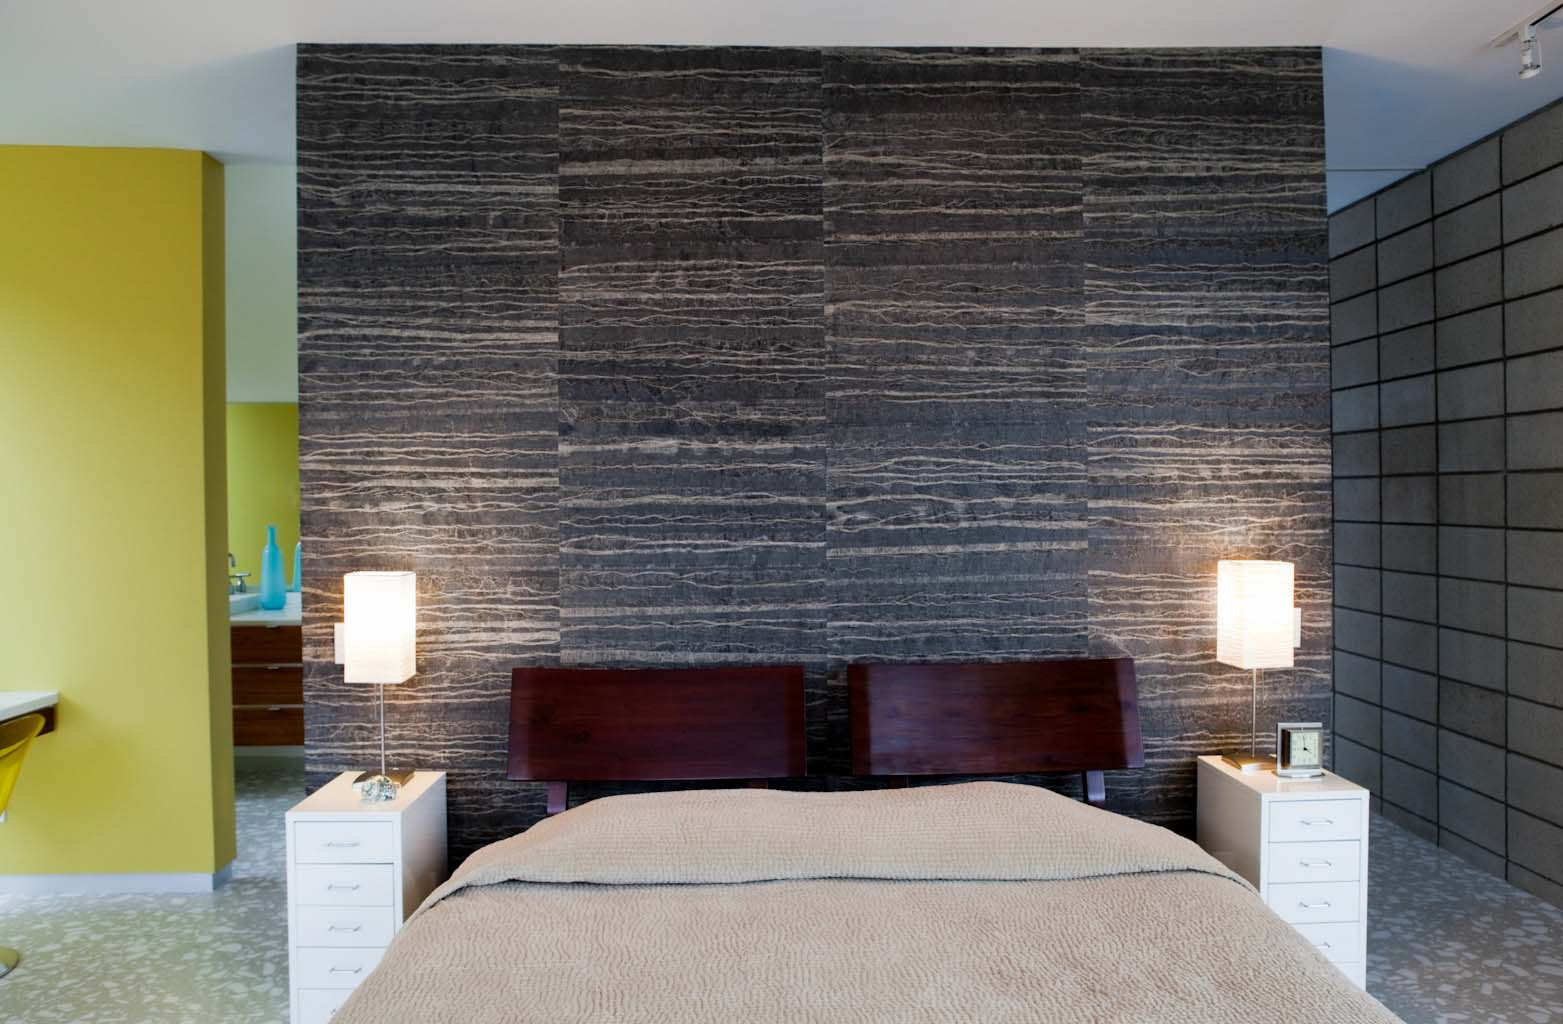 Dream Bedroom Cover Panels In Fabric Walls : Wall covering winfab interiors india pvt ltd